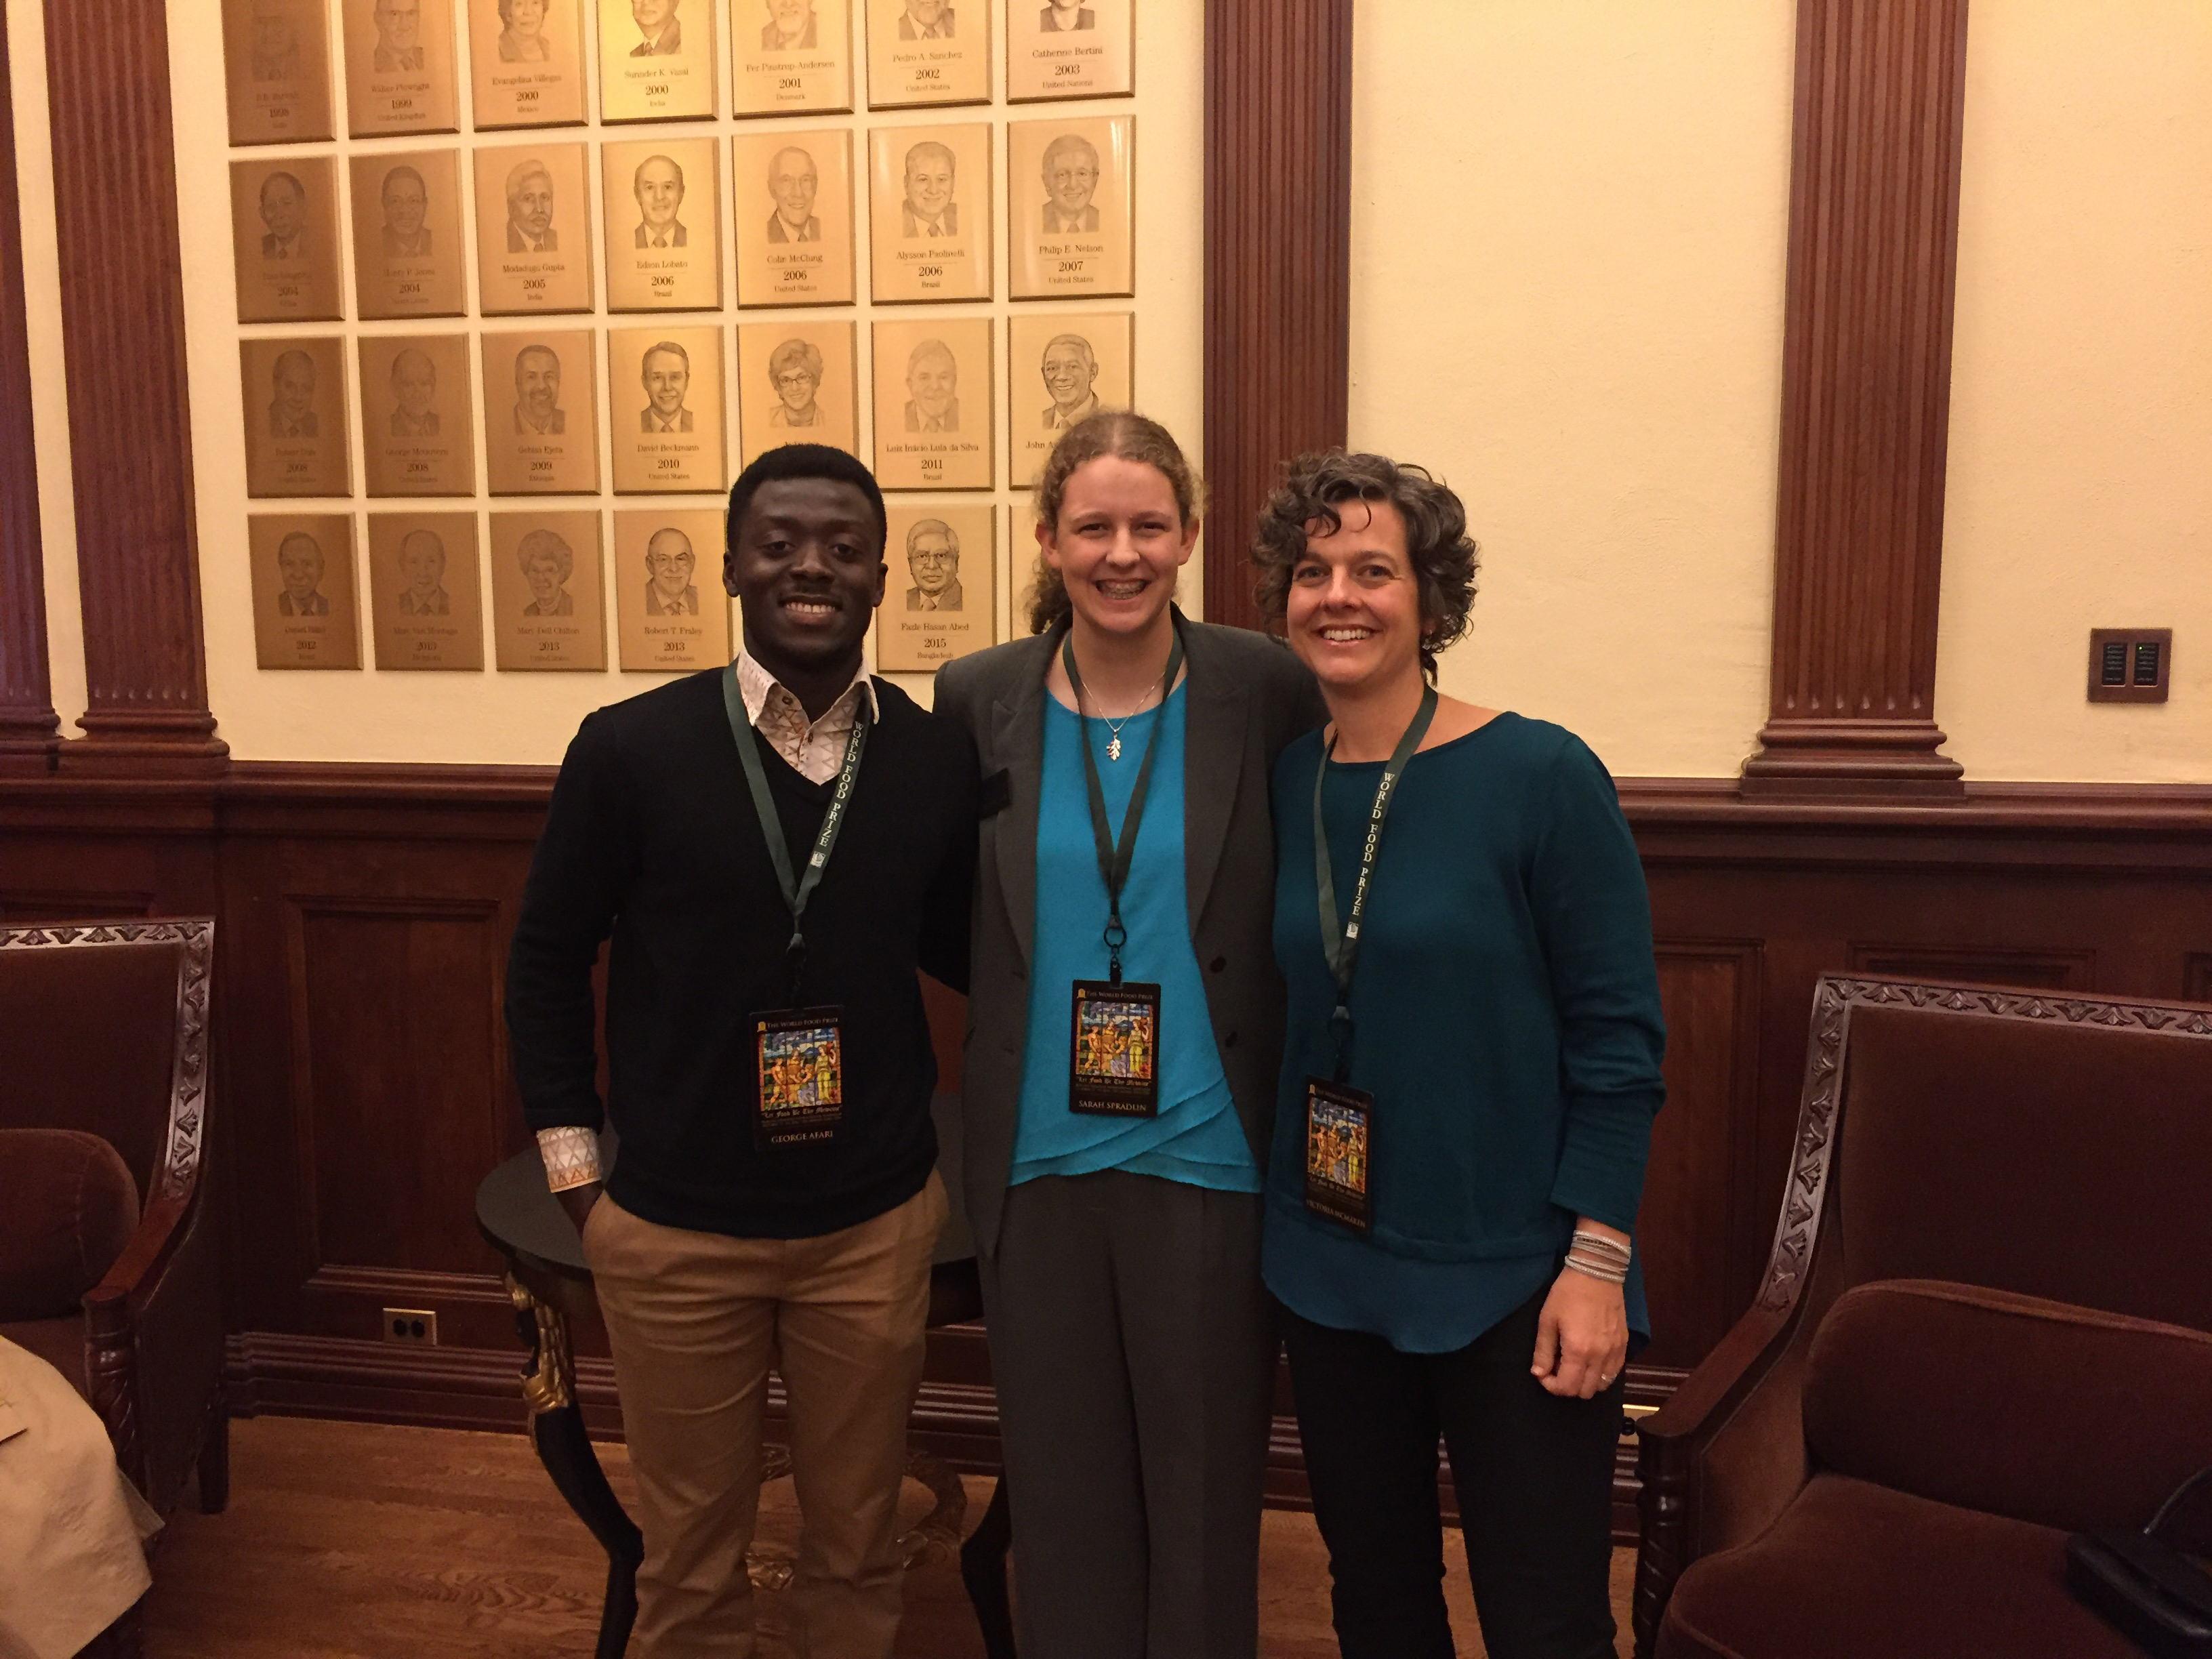 George Afari, a UGA Ph.D. student studying food science, and Sarah Spradlin, first-year student studying agricultural communication and international affairs, traveled with Vicki McMacken, assistant director for the UGA CAES Office of Global Programs, to Des Moines, Iowa for the World Food Prize's annual Borlaug Dialogues this October.